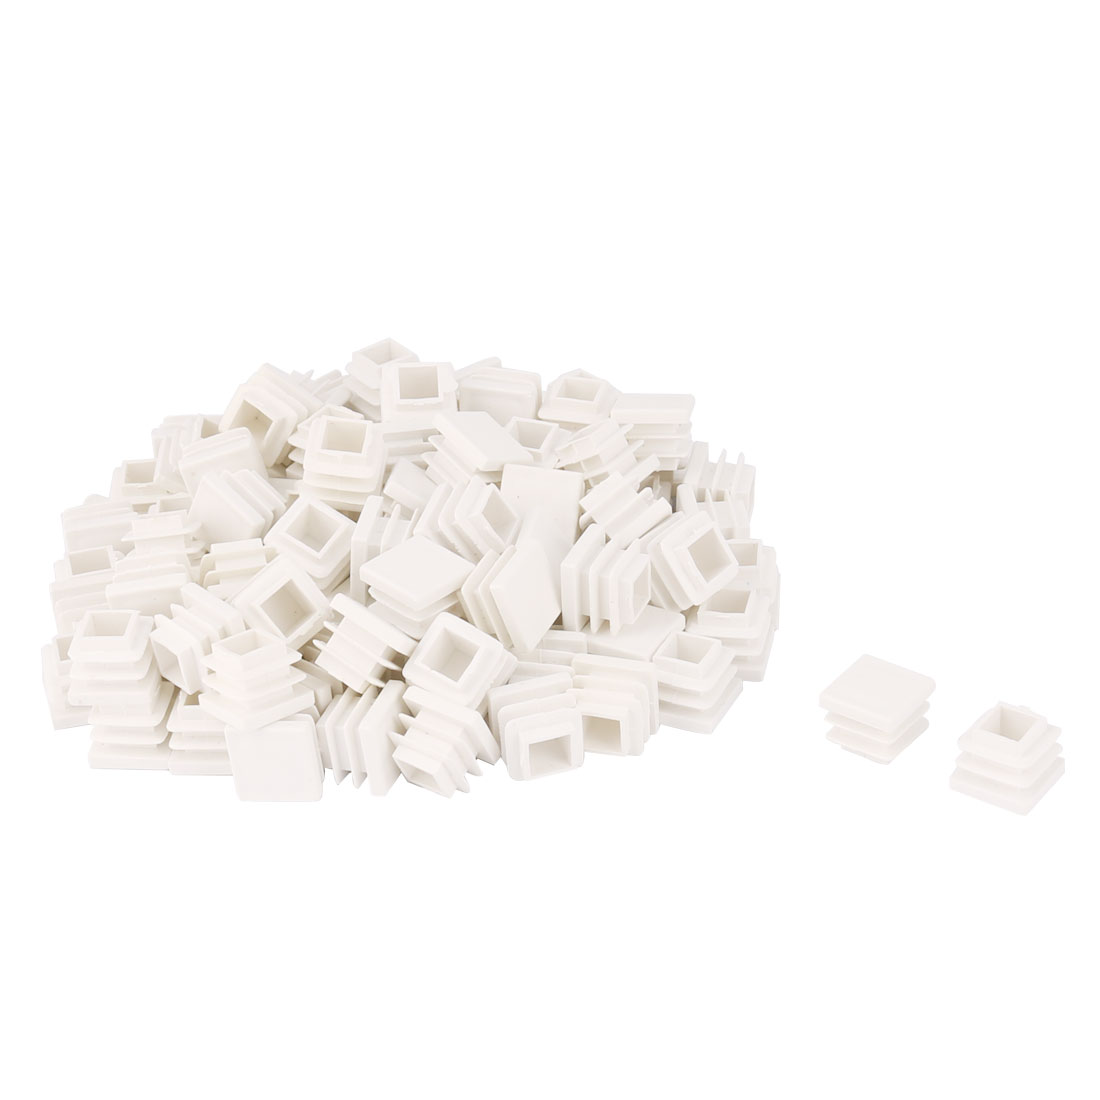 Plastic Square Design Tube Insert End Blanking Cover Cap White 16 x 16mm 100pcs